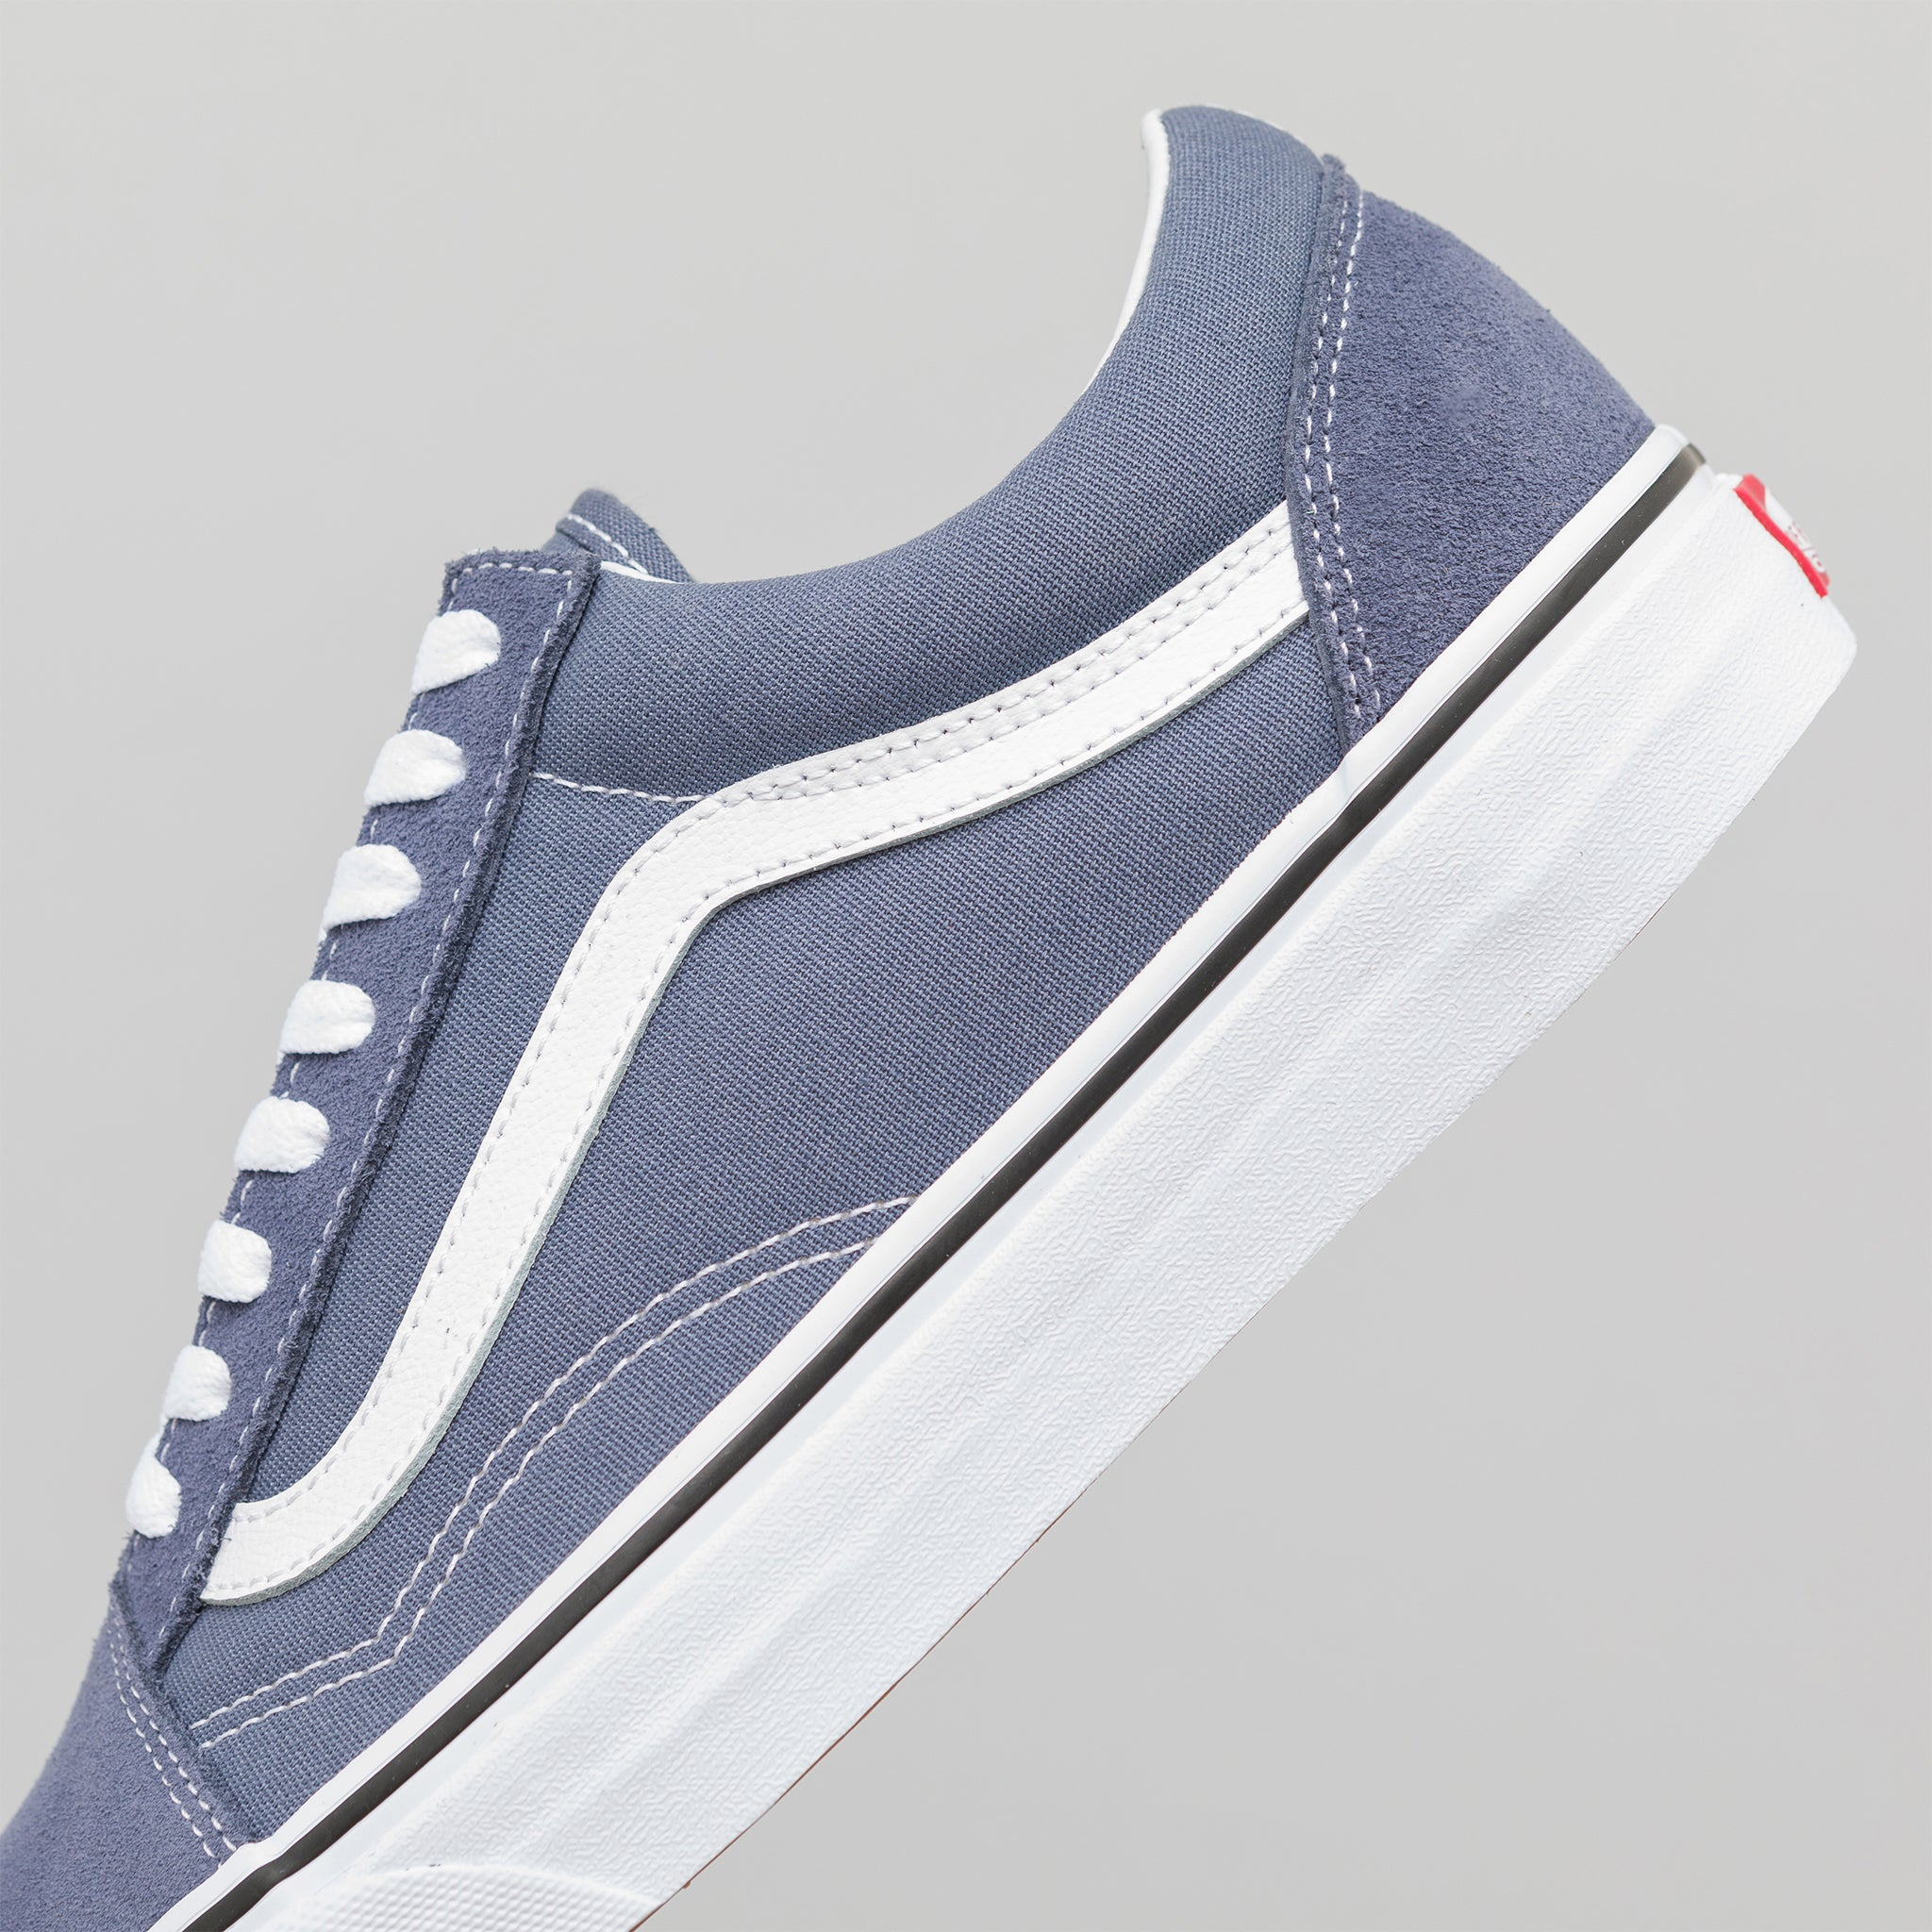 9c9ce20b056 Vans Old Skool in Grisaille True White